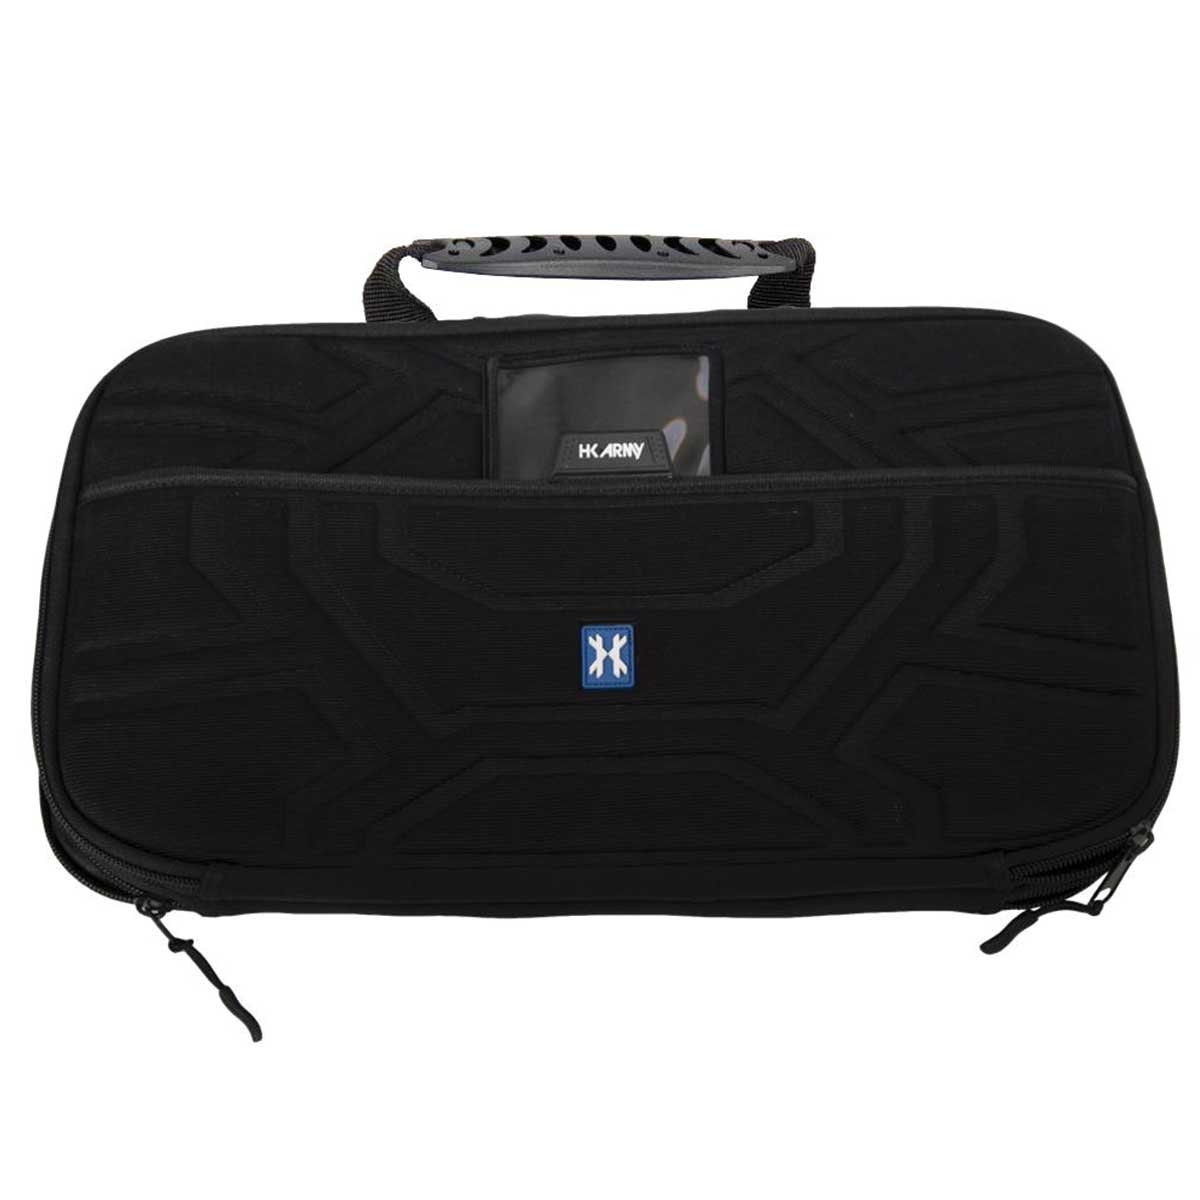 HK Army Exo Marker Bag/Gun Case - Large